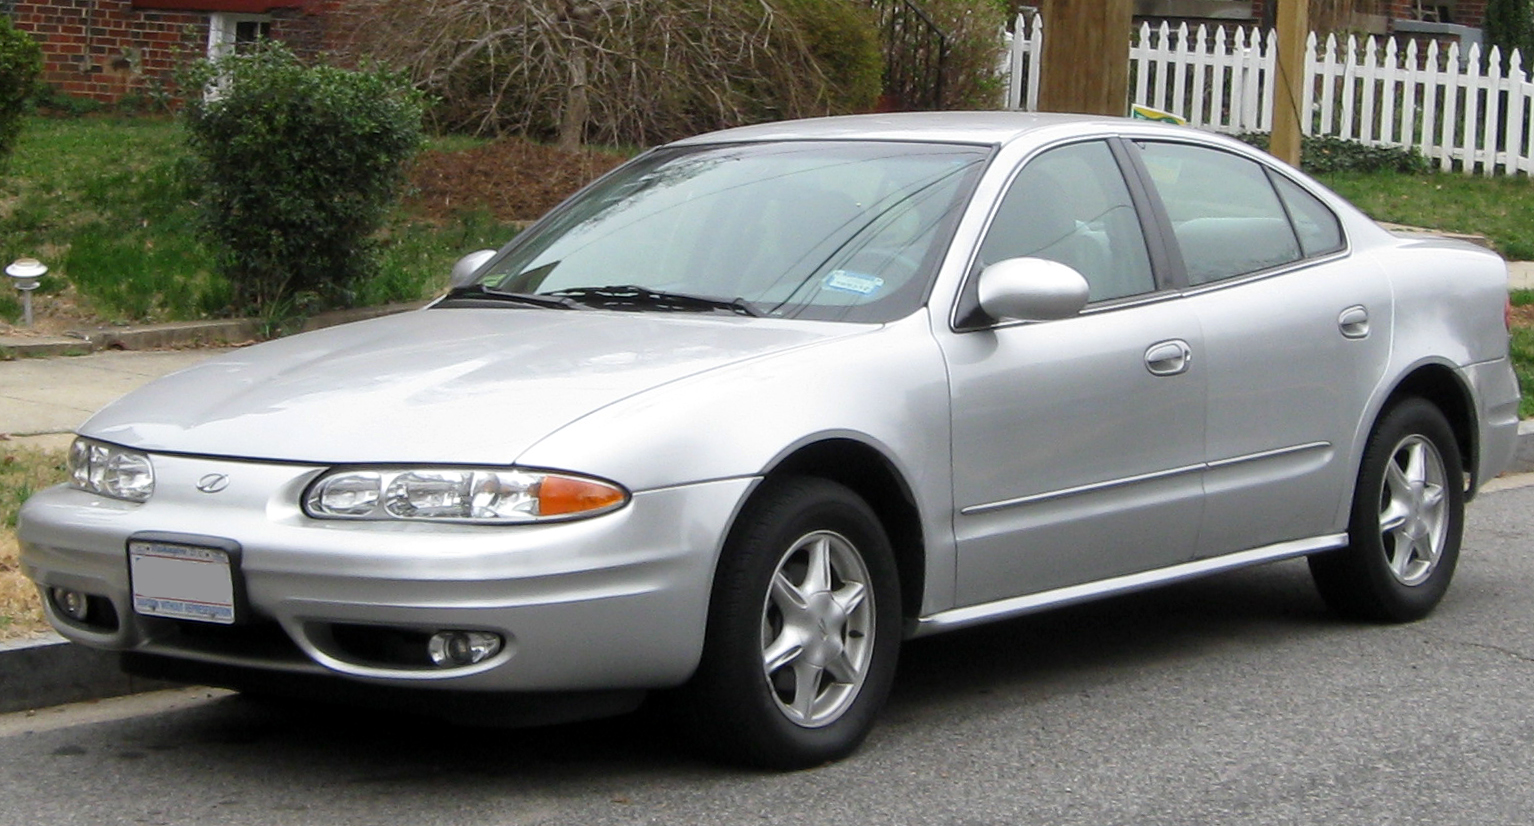 oldsmobile alero wikipedia oldsmobile alero wikipedia